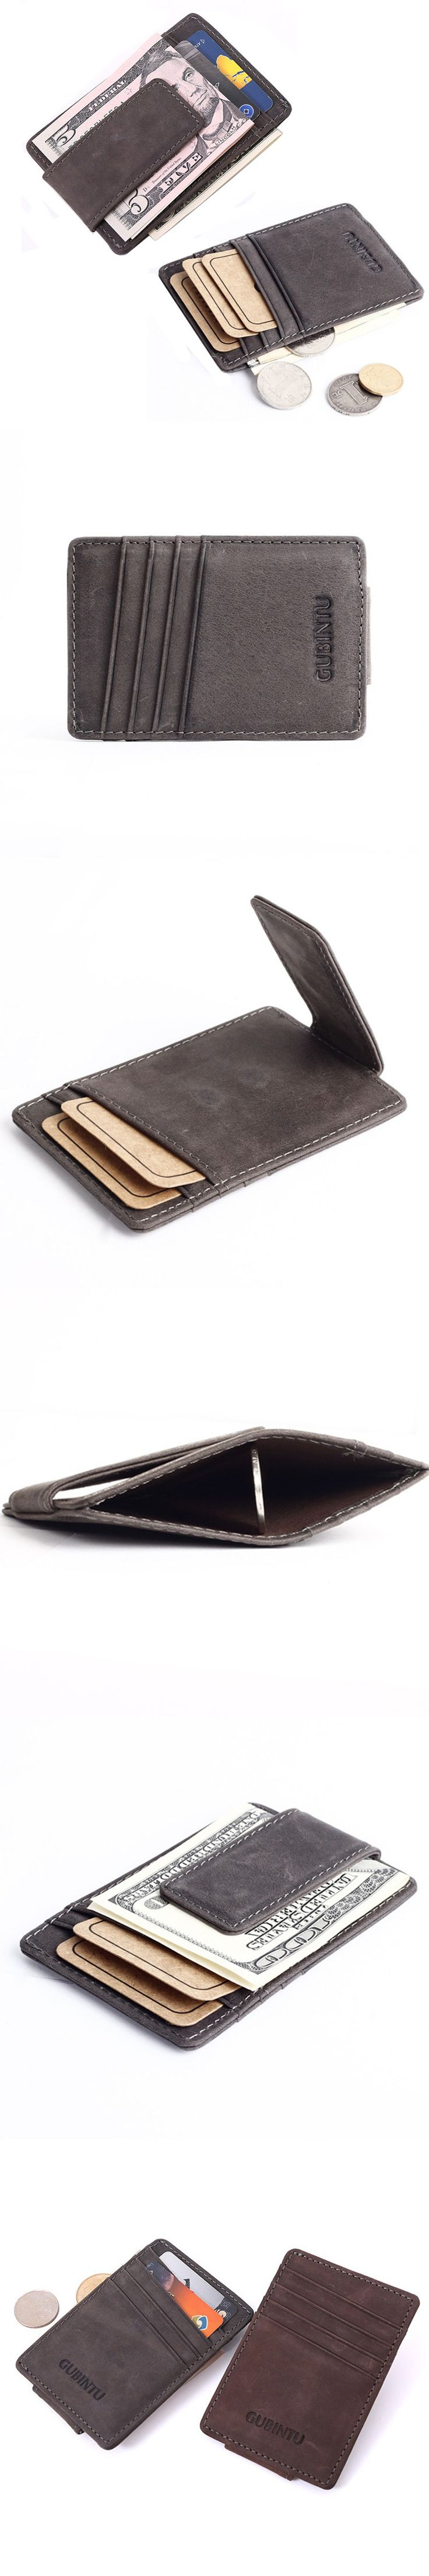 New arrival Vintage Nubuck Genuine leather Men money clip wallet with card slots simple designer magnet clamp purse for male $15.96